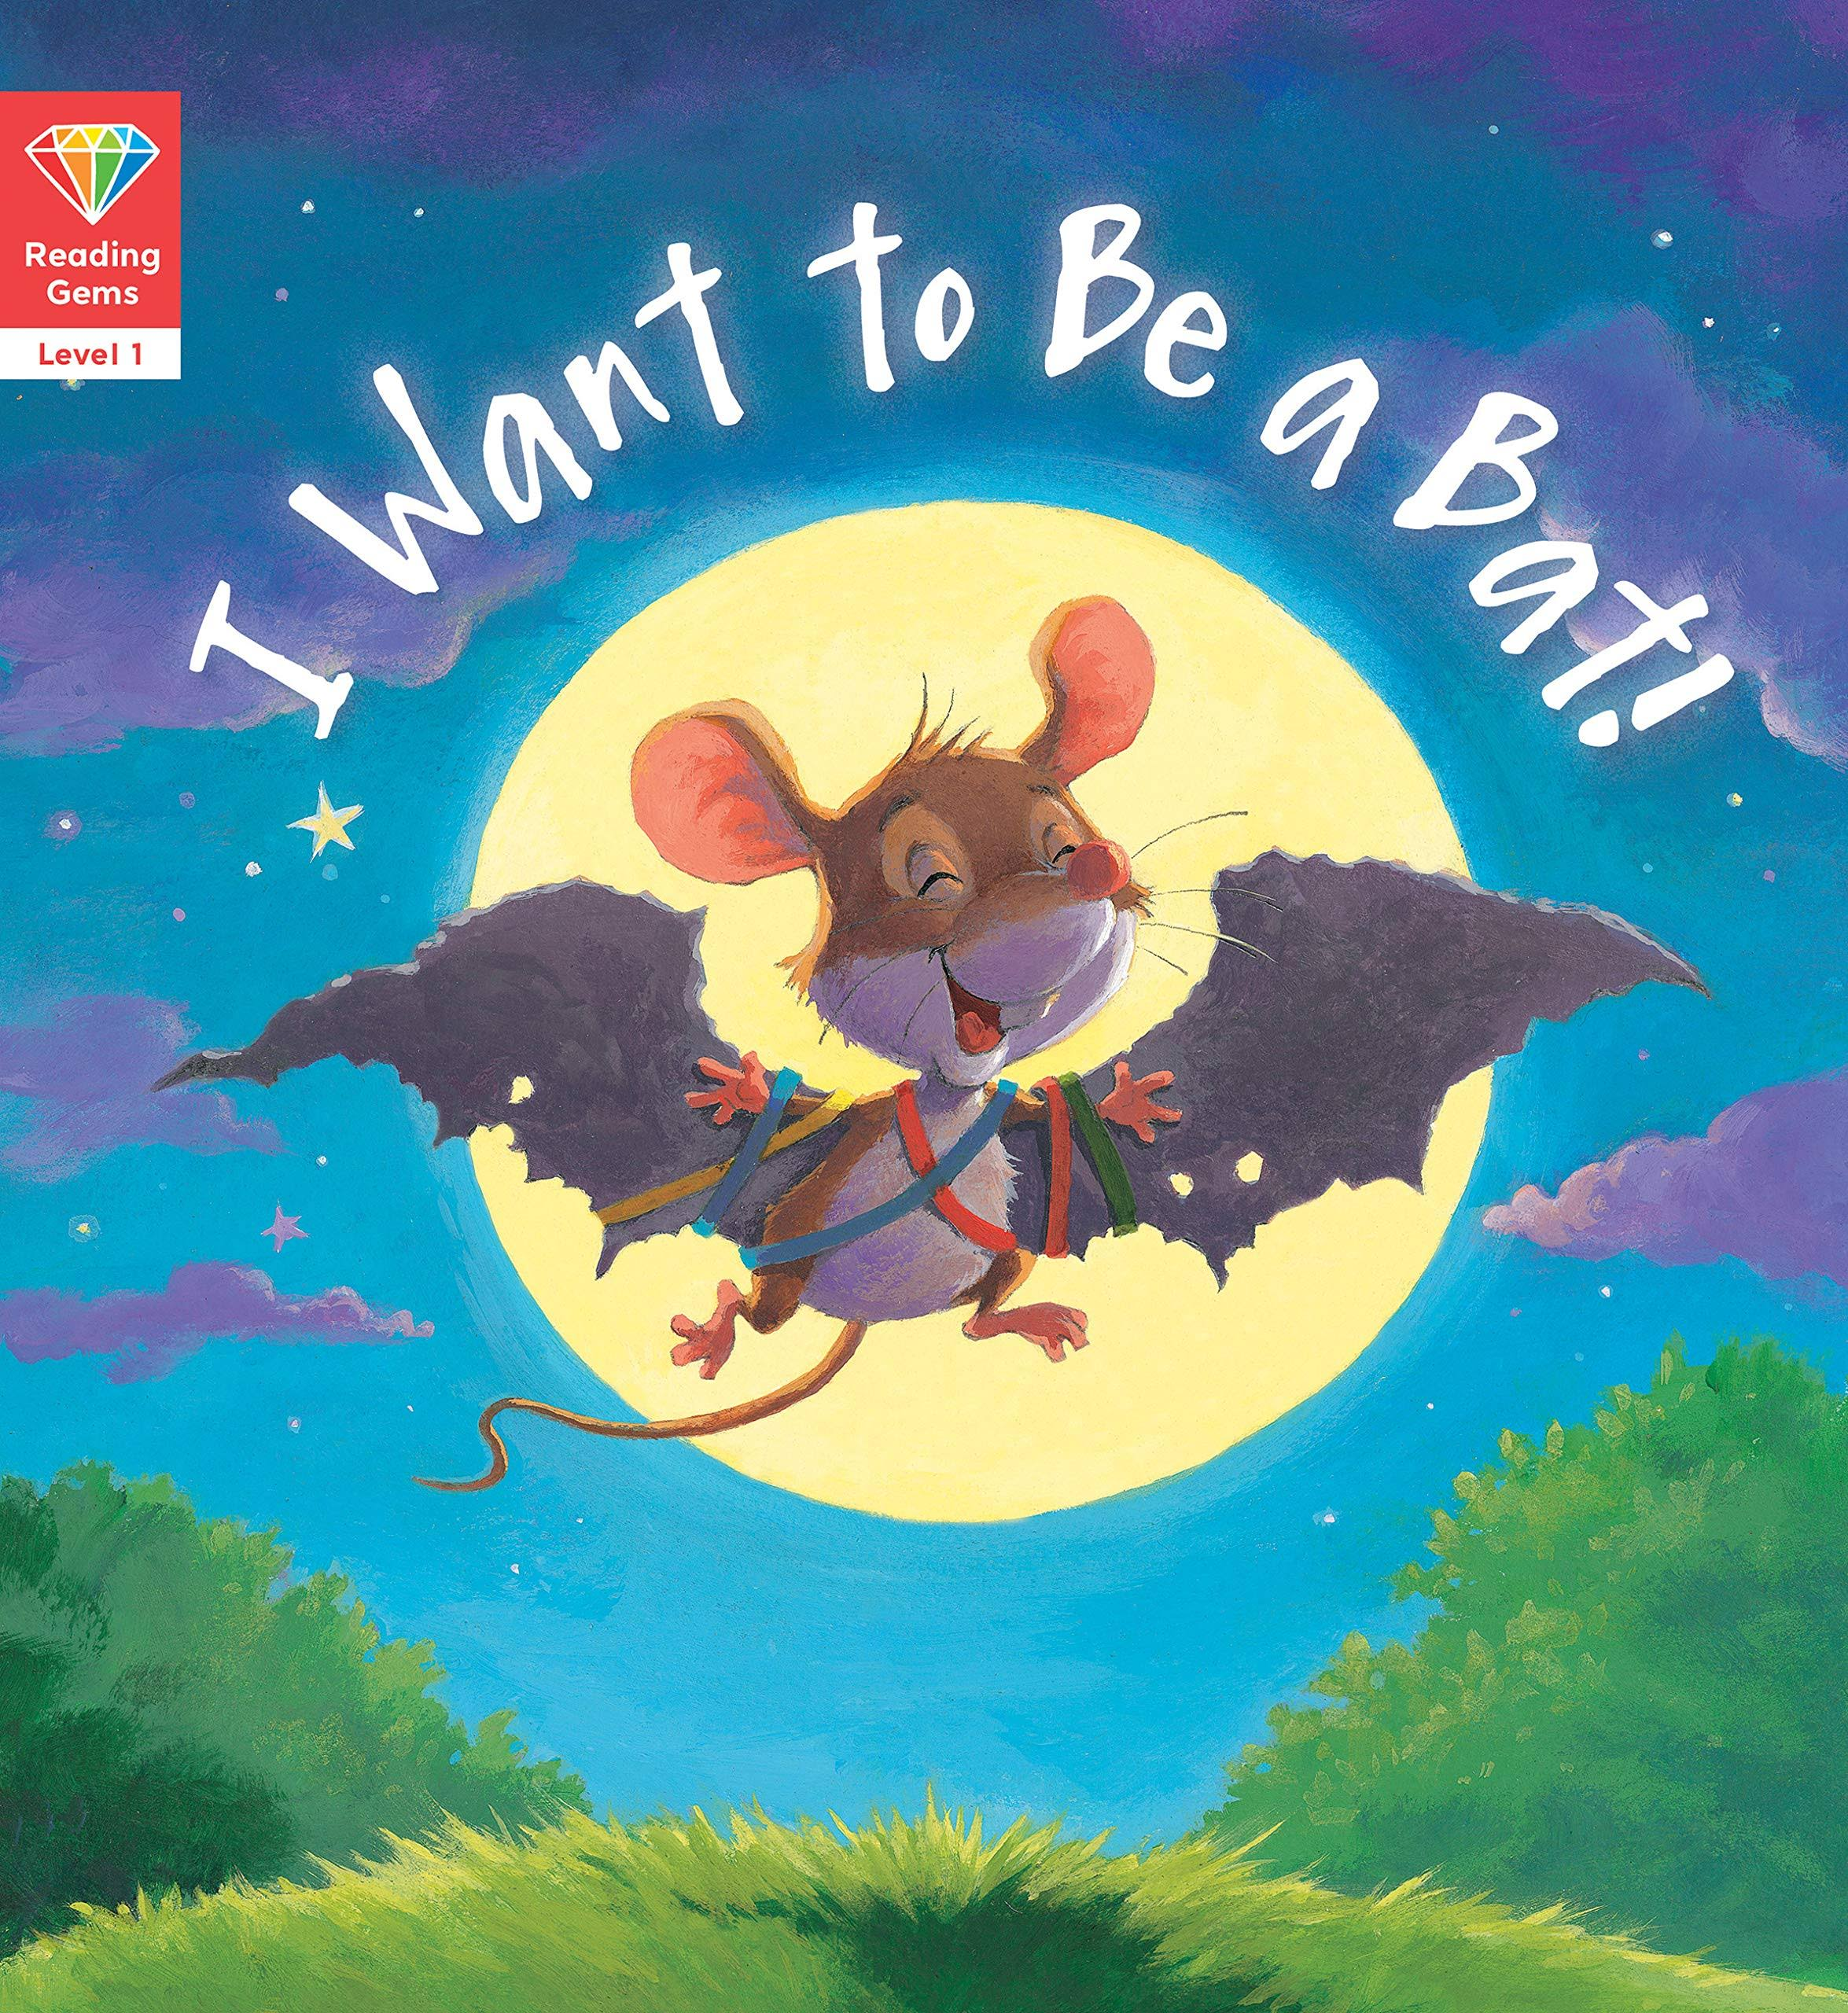 Reading Gems: I Want to Be a Bat! (Level 1) [Book]